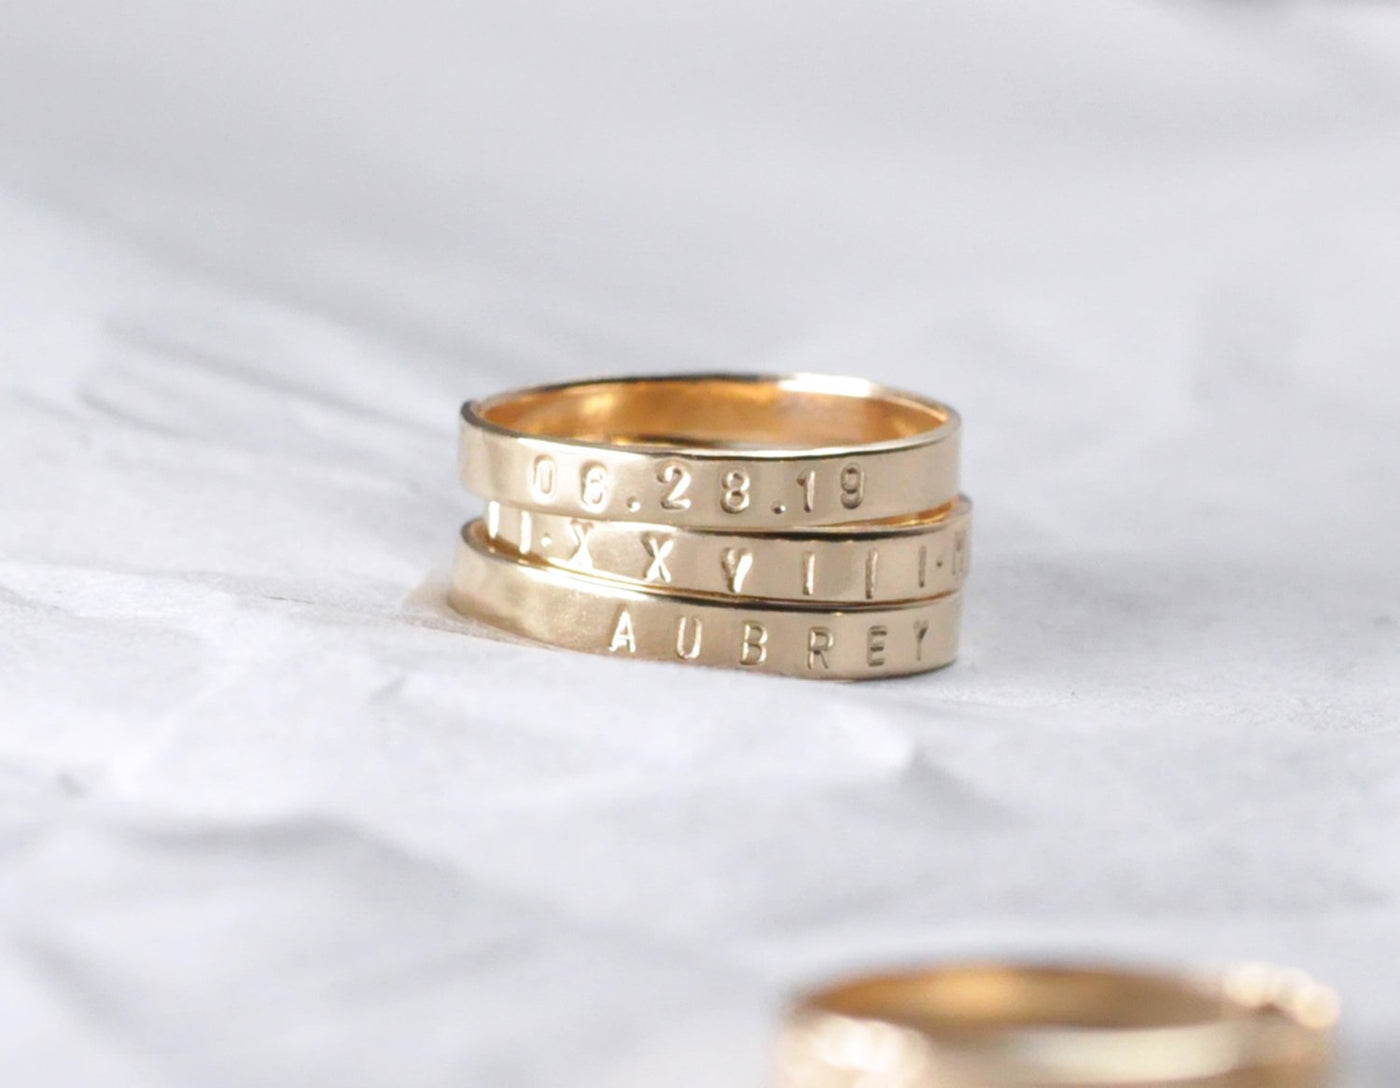 Aven 3 mm Personalized - 14K Yellow Gold Ring